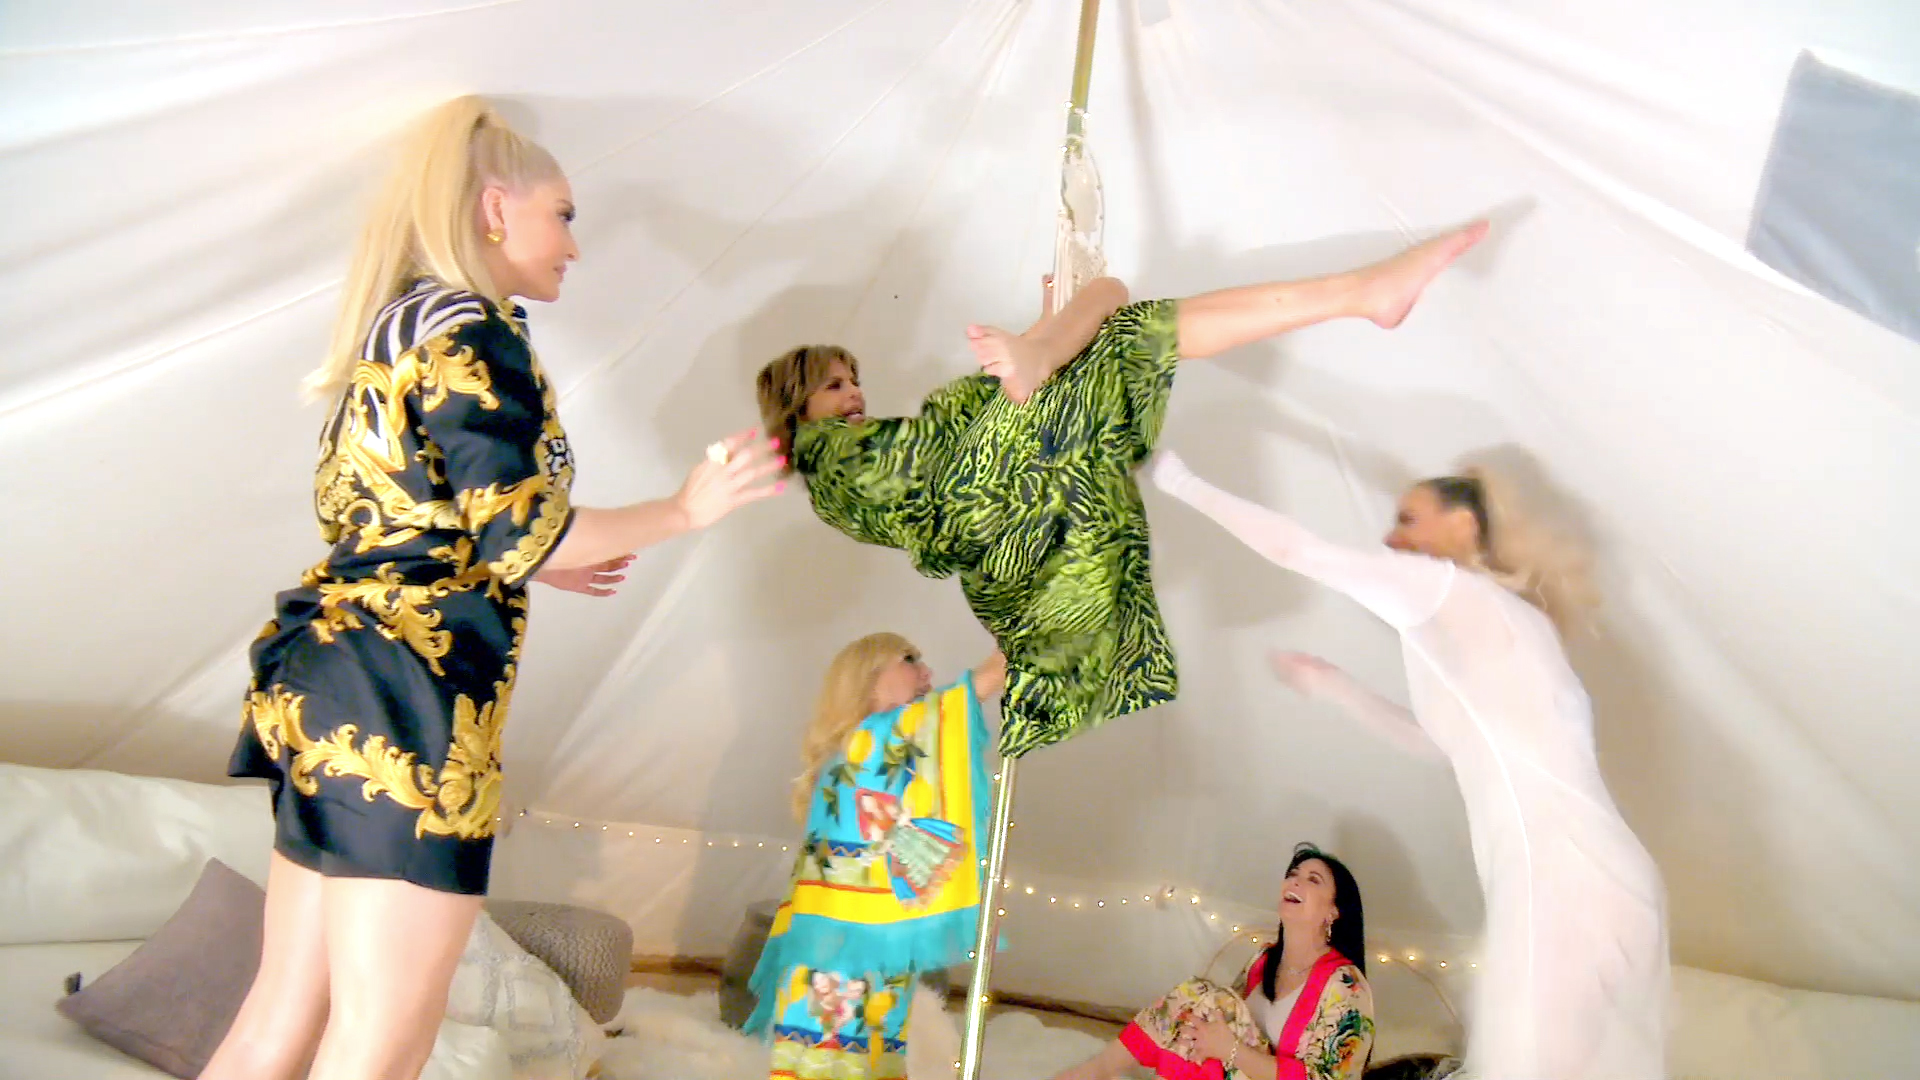 The Real Housewives of Beverly Hills Show Off Their Pole Dancing Skills